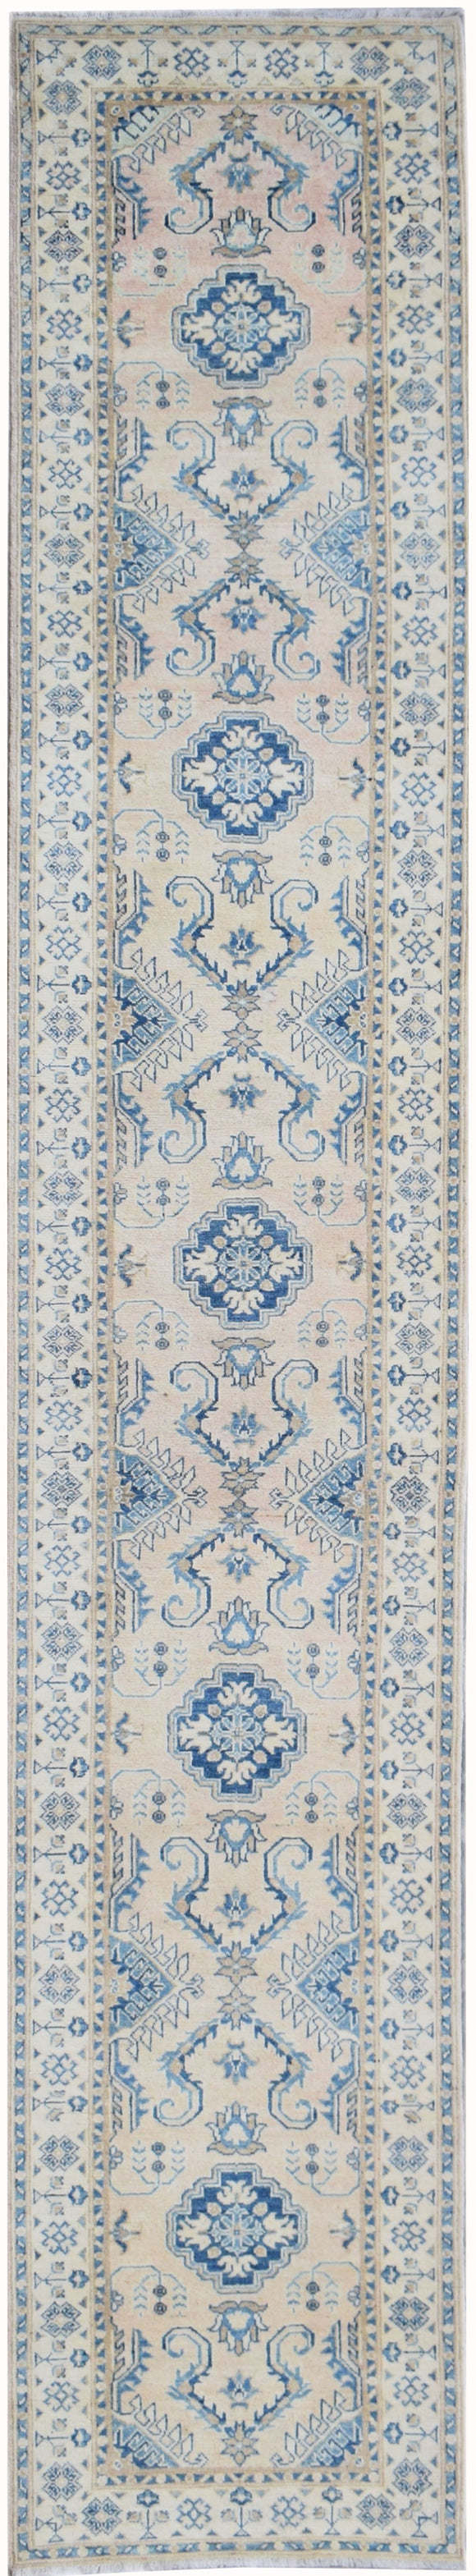 Handmade Sultan Collection Hallway Runner | 455 x 81 cm | 14'11